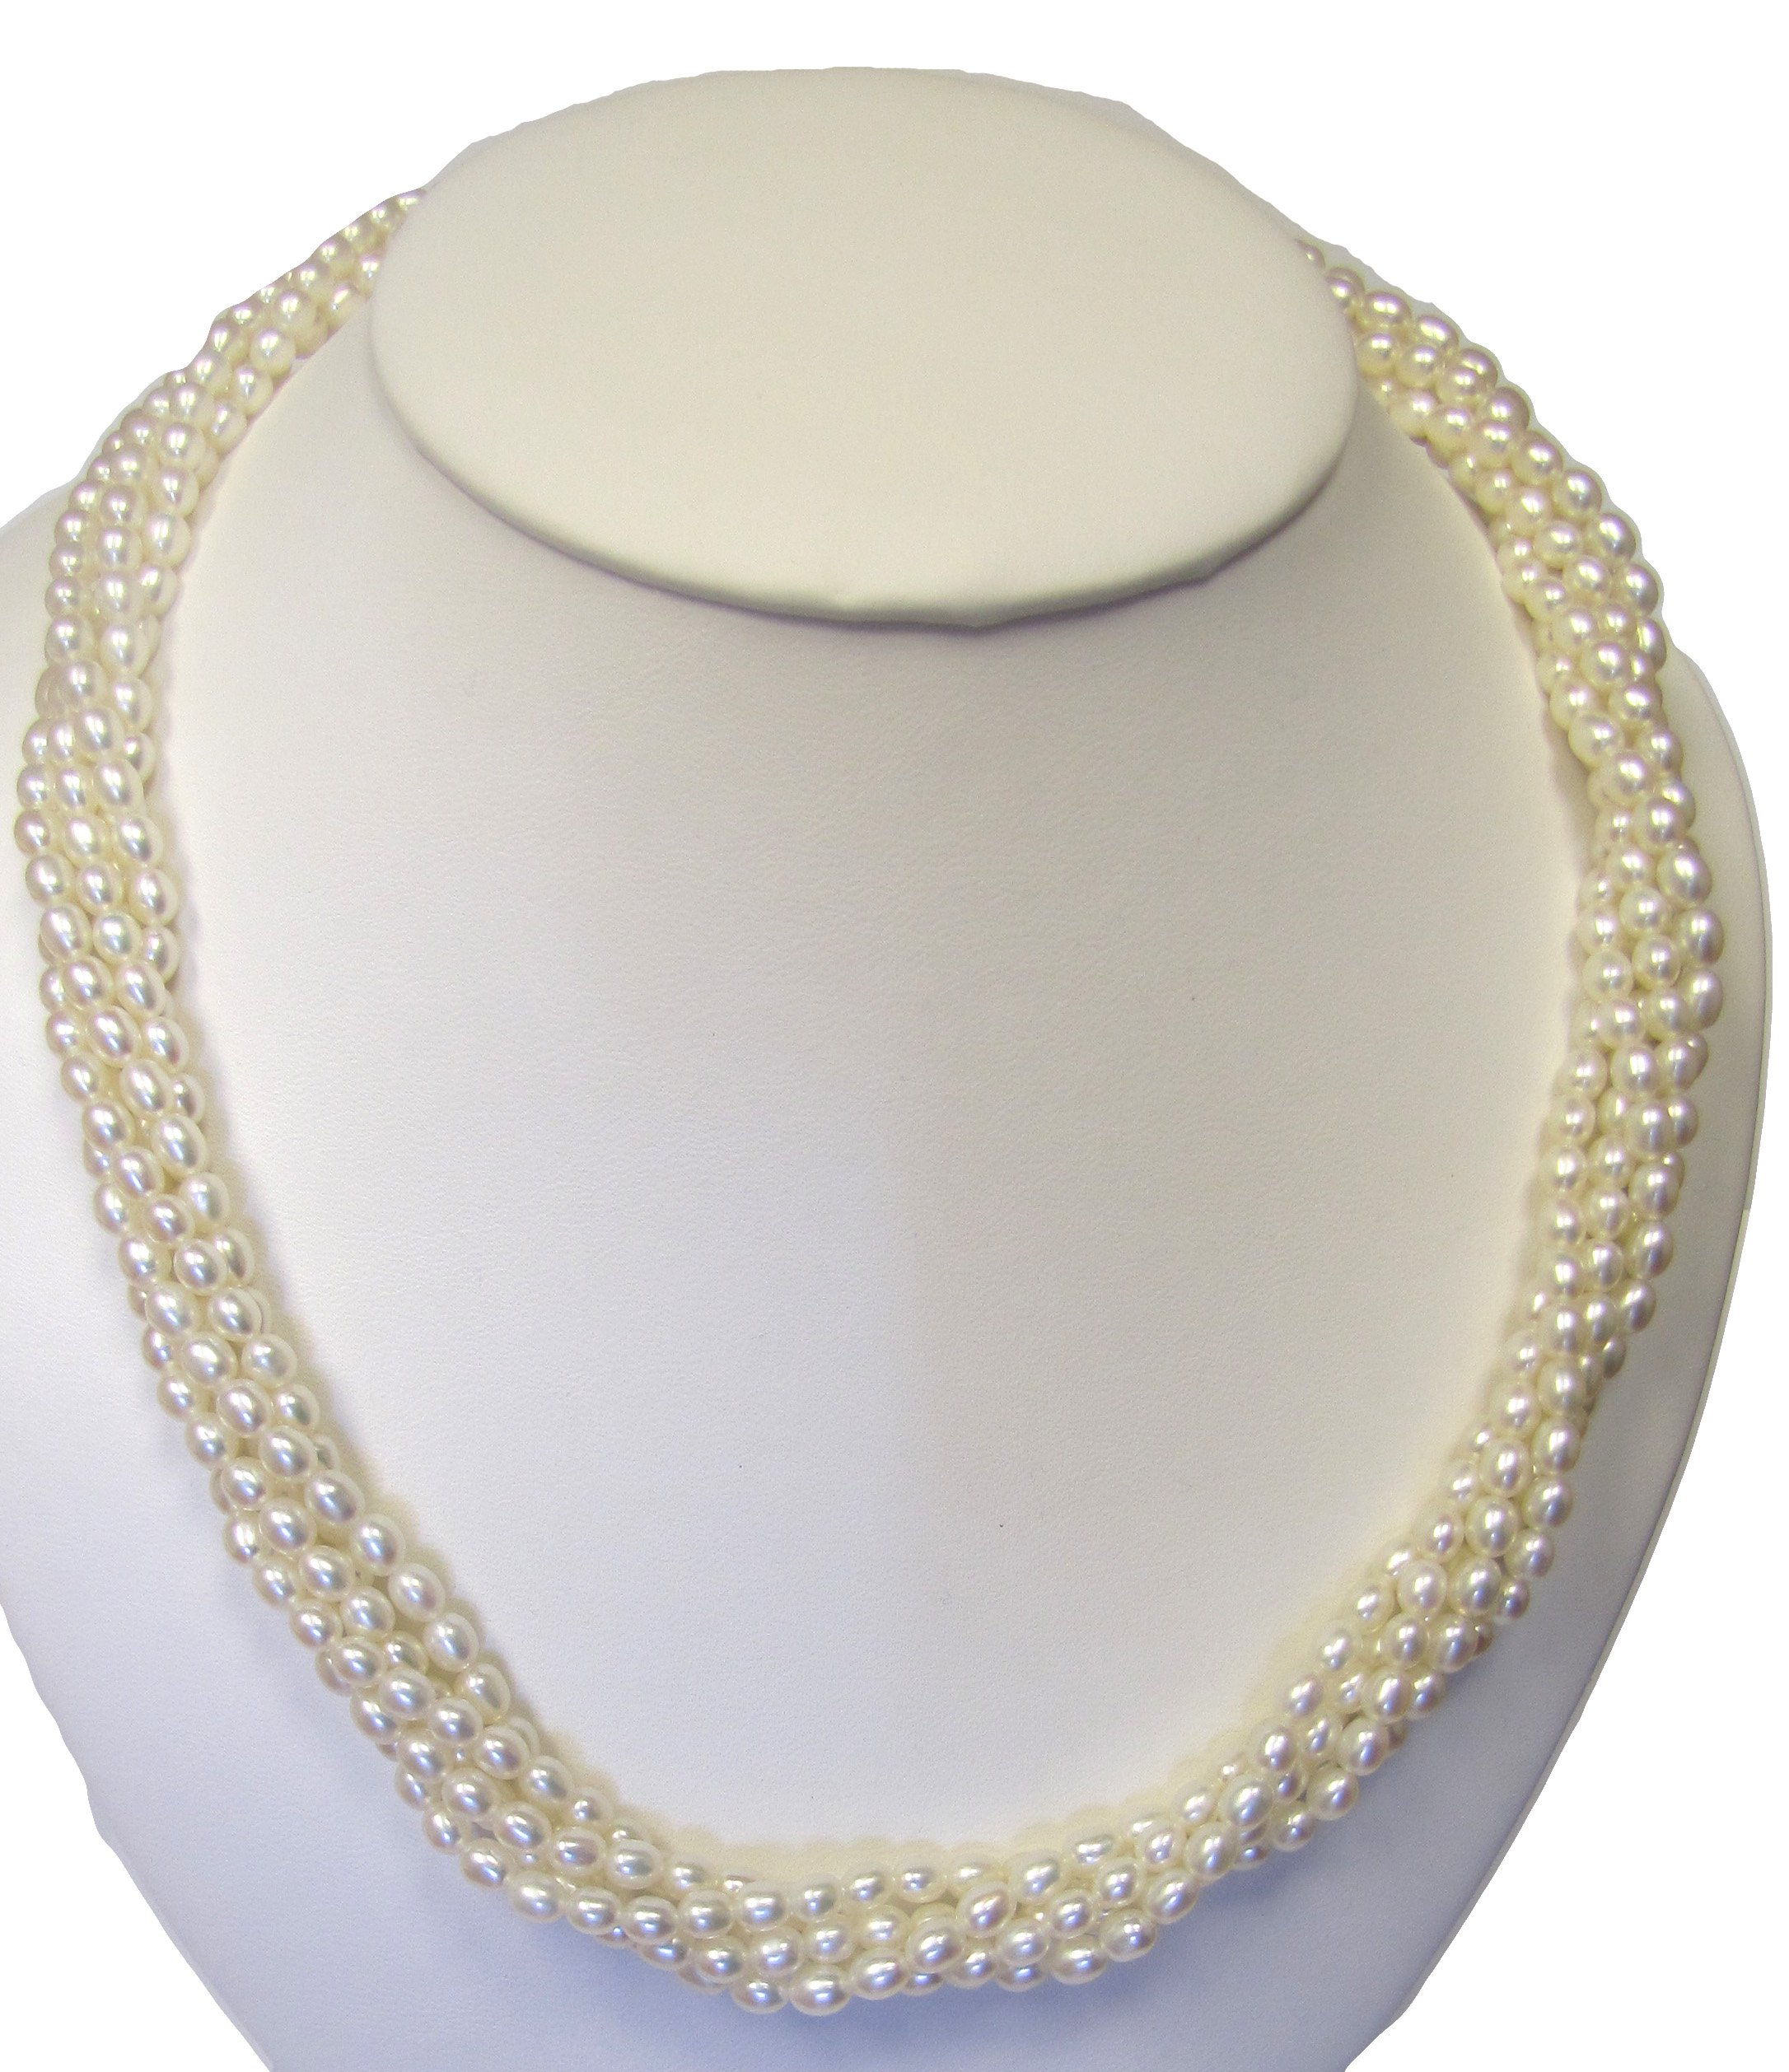 Clariel Designs Sterling Silver Fresh Water Cultured Pearl AAA Biwa Style Torsade/Tiwst Necklace, 5 Rows, 18'' Twisted